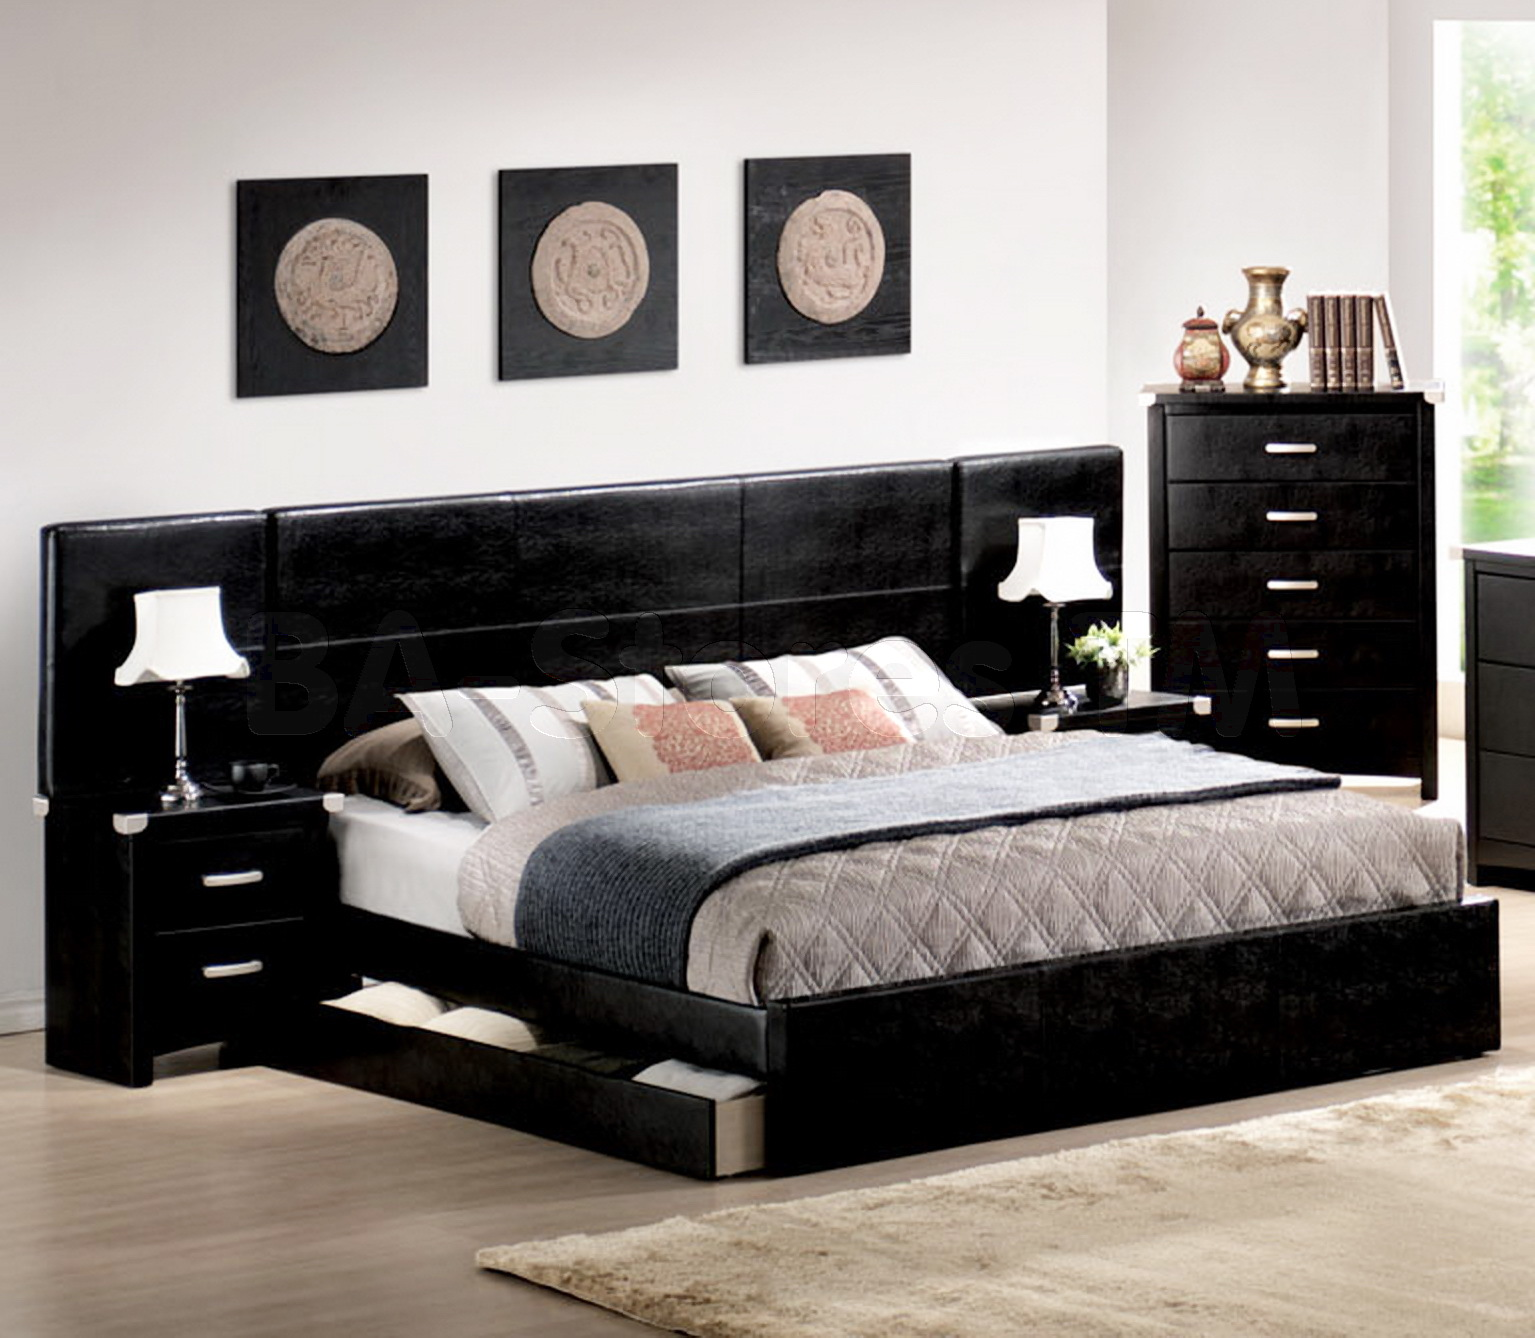 do it yourself bedroom furniture ideas photo - 8